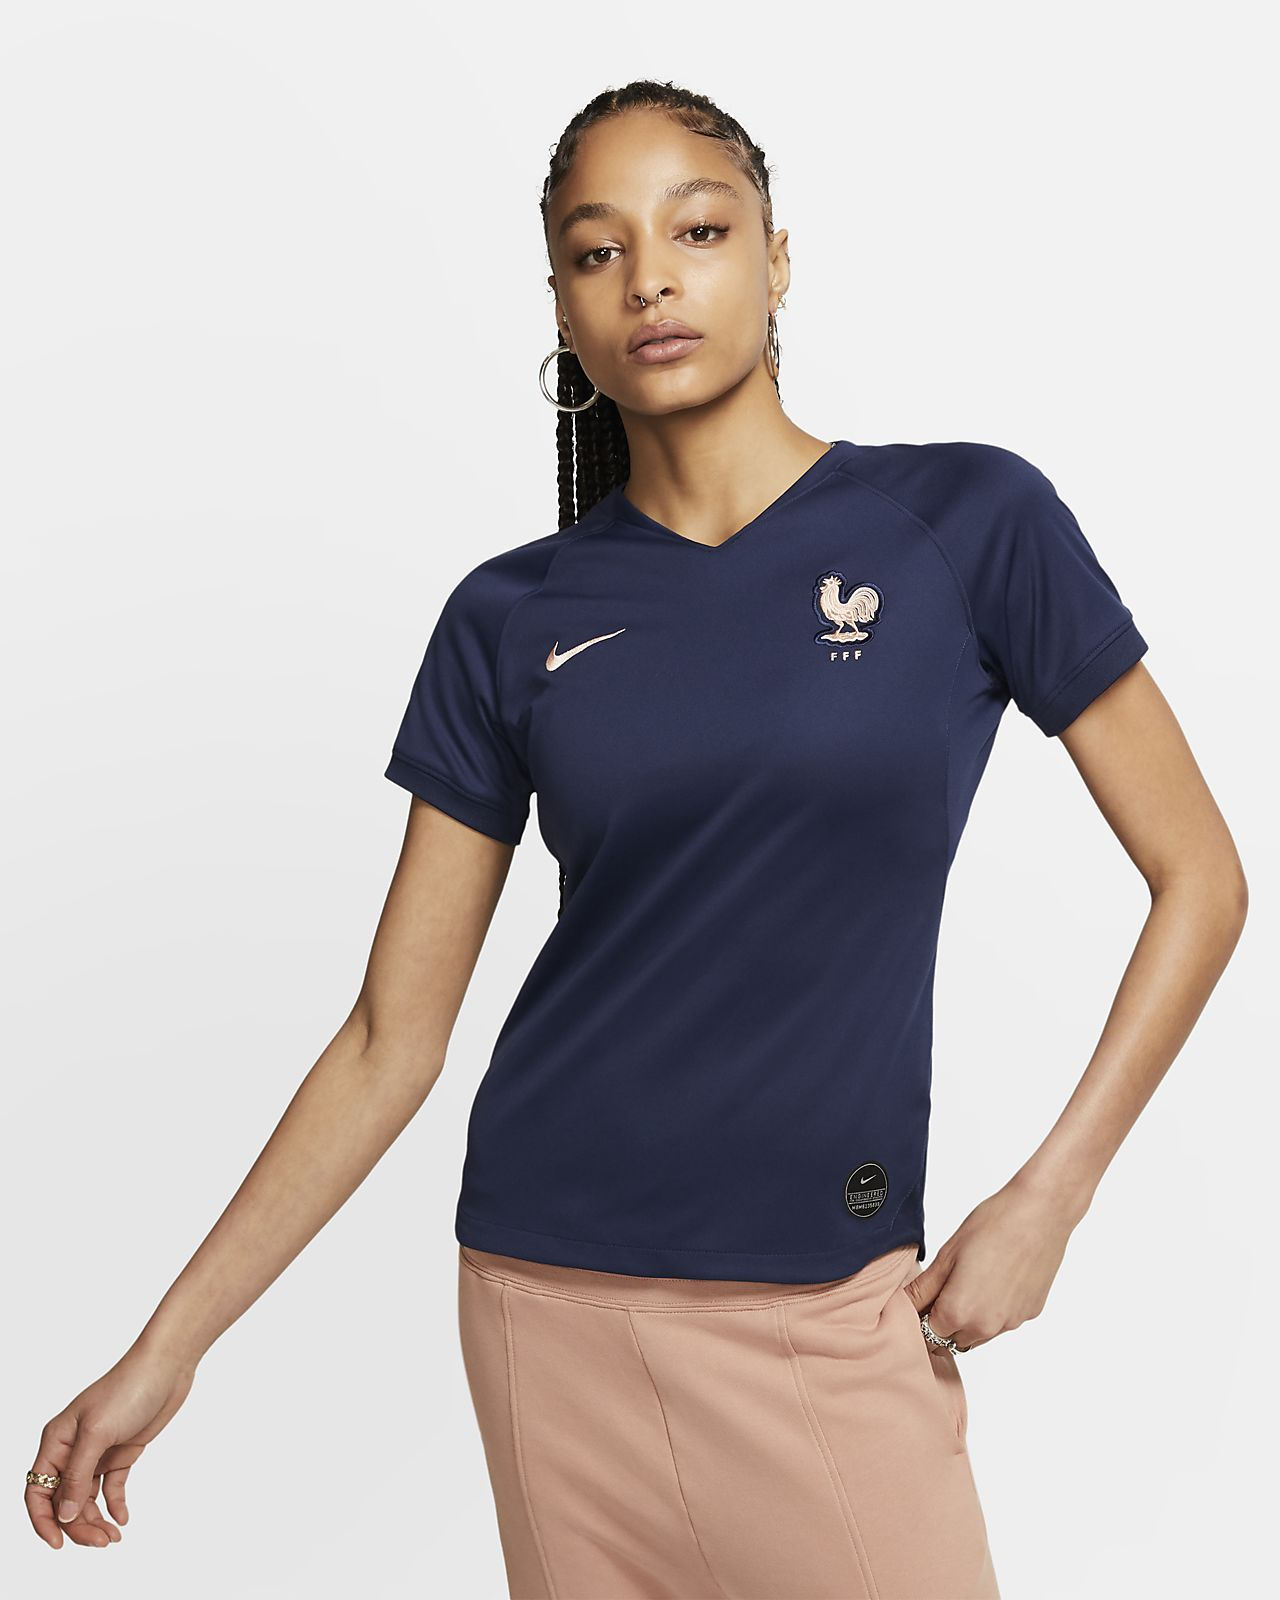 FFF 2019 Stadium Home Women's Football Shirt